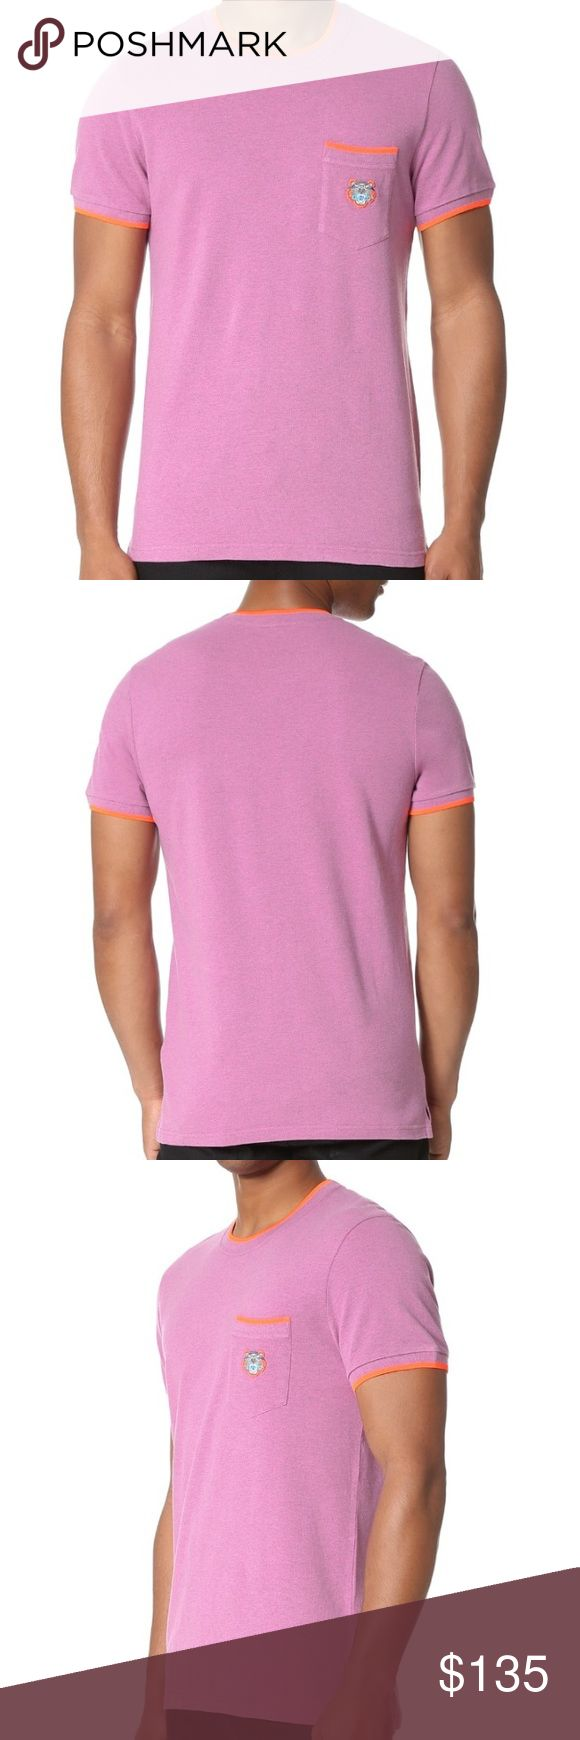 Kenzo Tiger Crest Pique Pocket Tee New 2016/17 Sold Out RARE authentic Kenzo Paris men's heathered pink/purple with green/Orange Contrast edging adds a pop of neon color to this crew-neck KENZO tee. Logo embroidery at the breast pocket. Short sleeves. Split hem. Fabric: Piqué. 100% cotton. Wash cold. Made in Portugal. Length: 28.25in / 72cm Chest: 41in / 104cm Cut slim. For a modern/slim fit, buy your normal size. For a classic/regular fit, buy 1 size larger than your normal. Ships fast from…